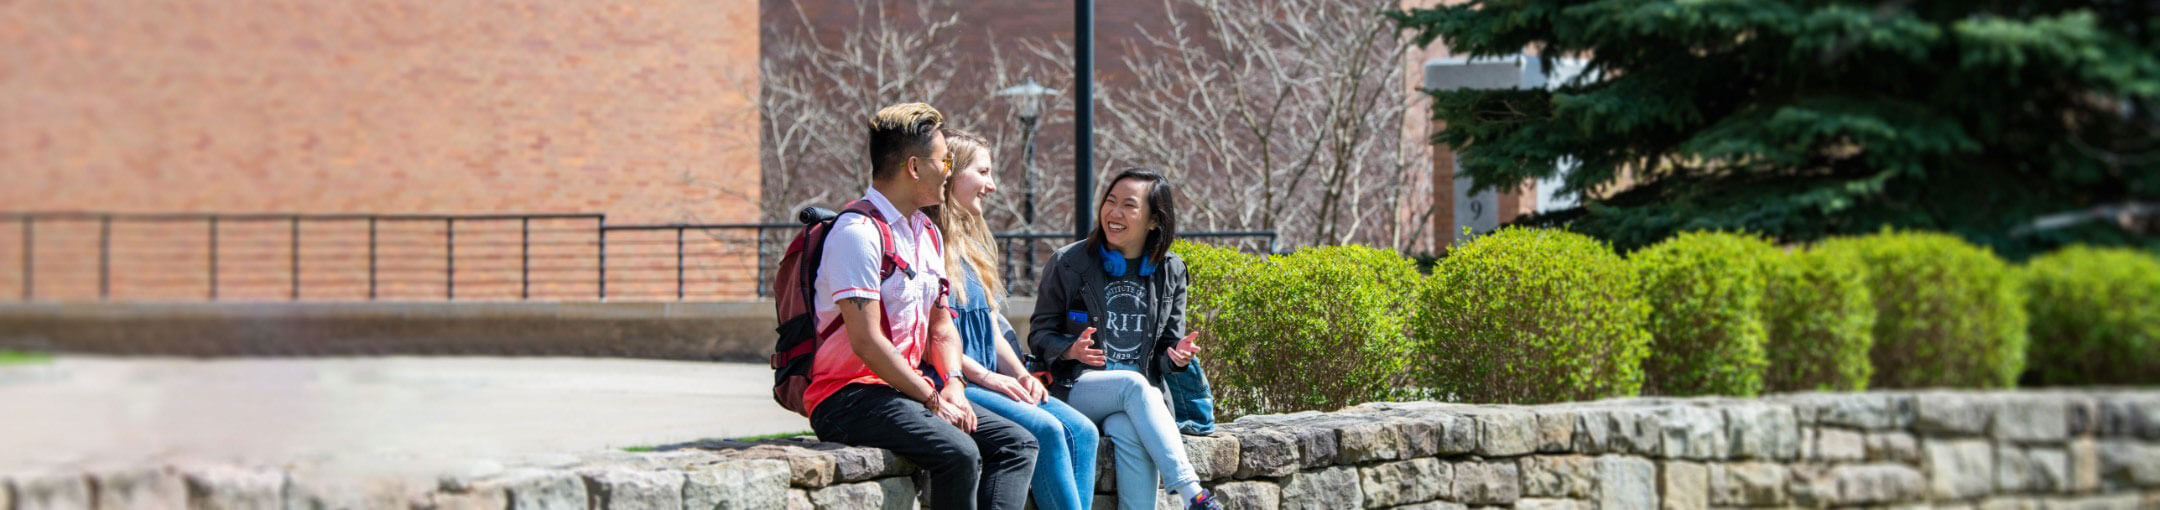 Three RIT students sitting on a stone wall in Kodak Quad.